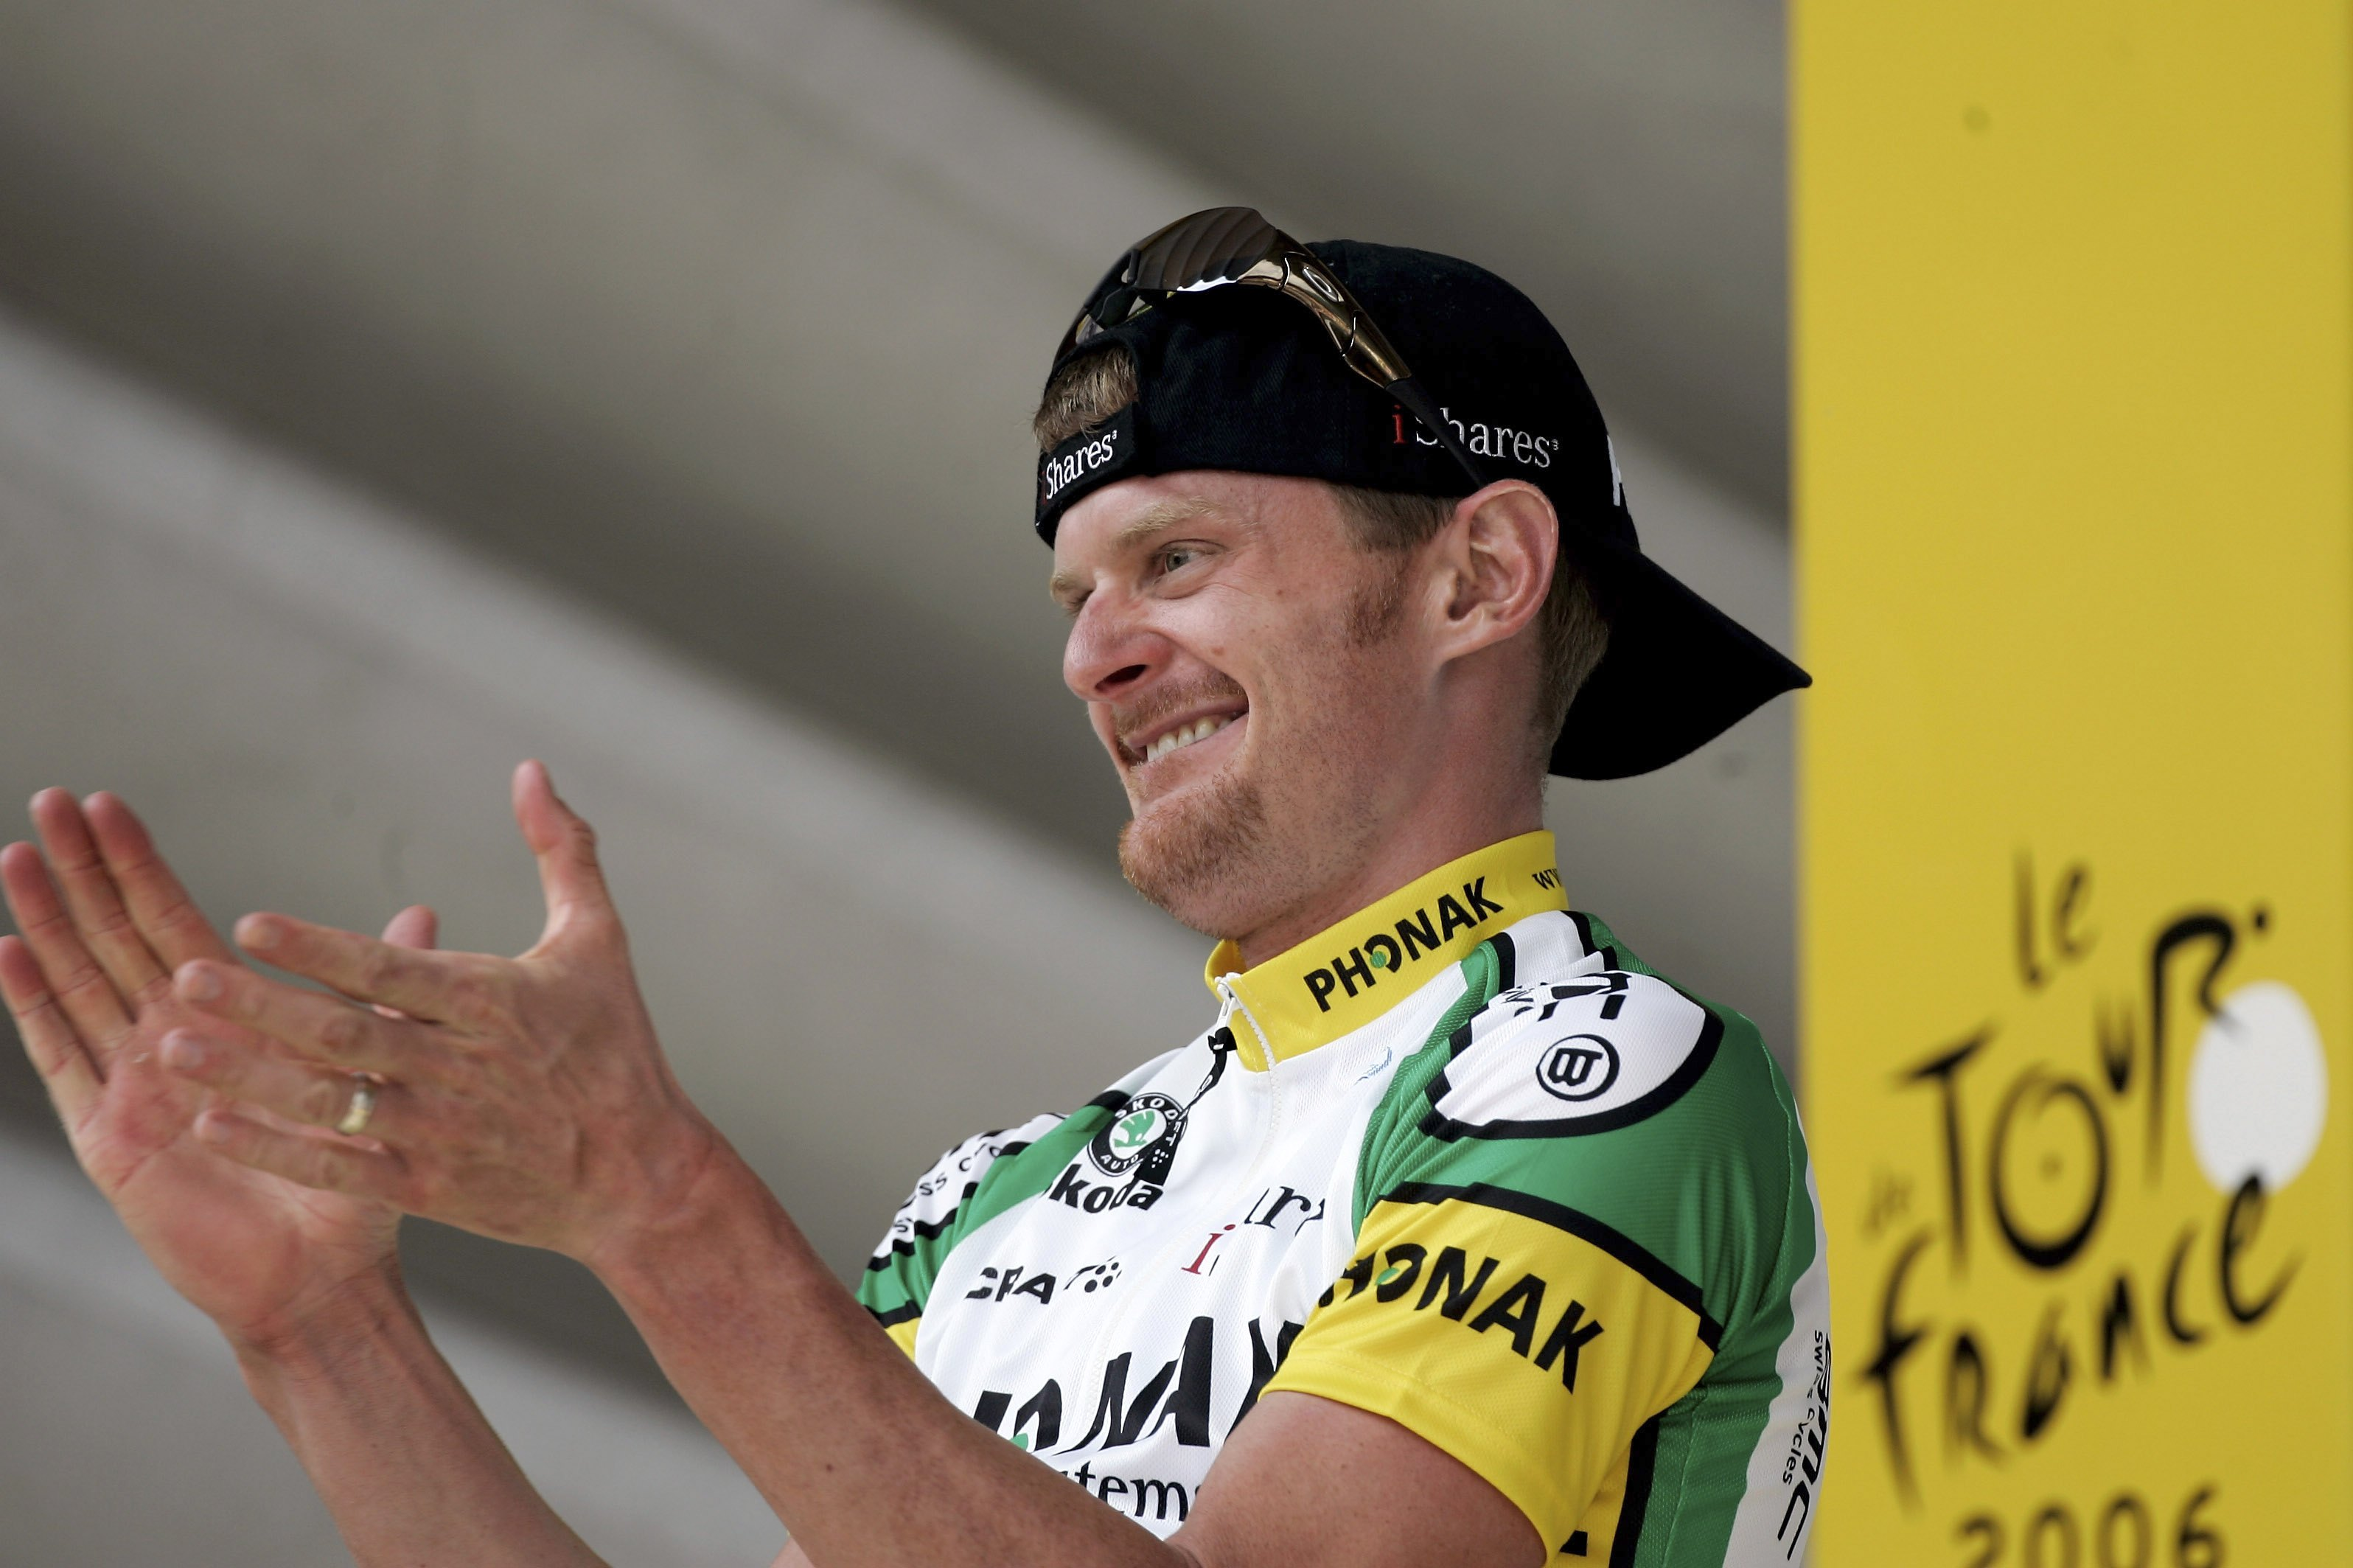 MORZINE-AVORIAZ, FRANCE - JULY 20:  ULY 20: Floyd Landis of the USA and Phonak celebrates winning Stage 17 of the 93rd Tour de France between Saint-Jean-de-Maurienne and Morzine-Avoriaz on July 20, 2006 in Morzine-Avoriaz, France.  (Photo by Bryn Lennon/G